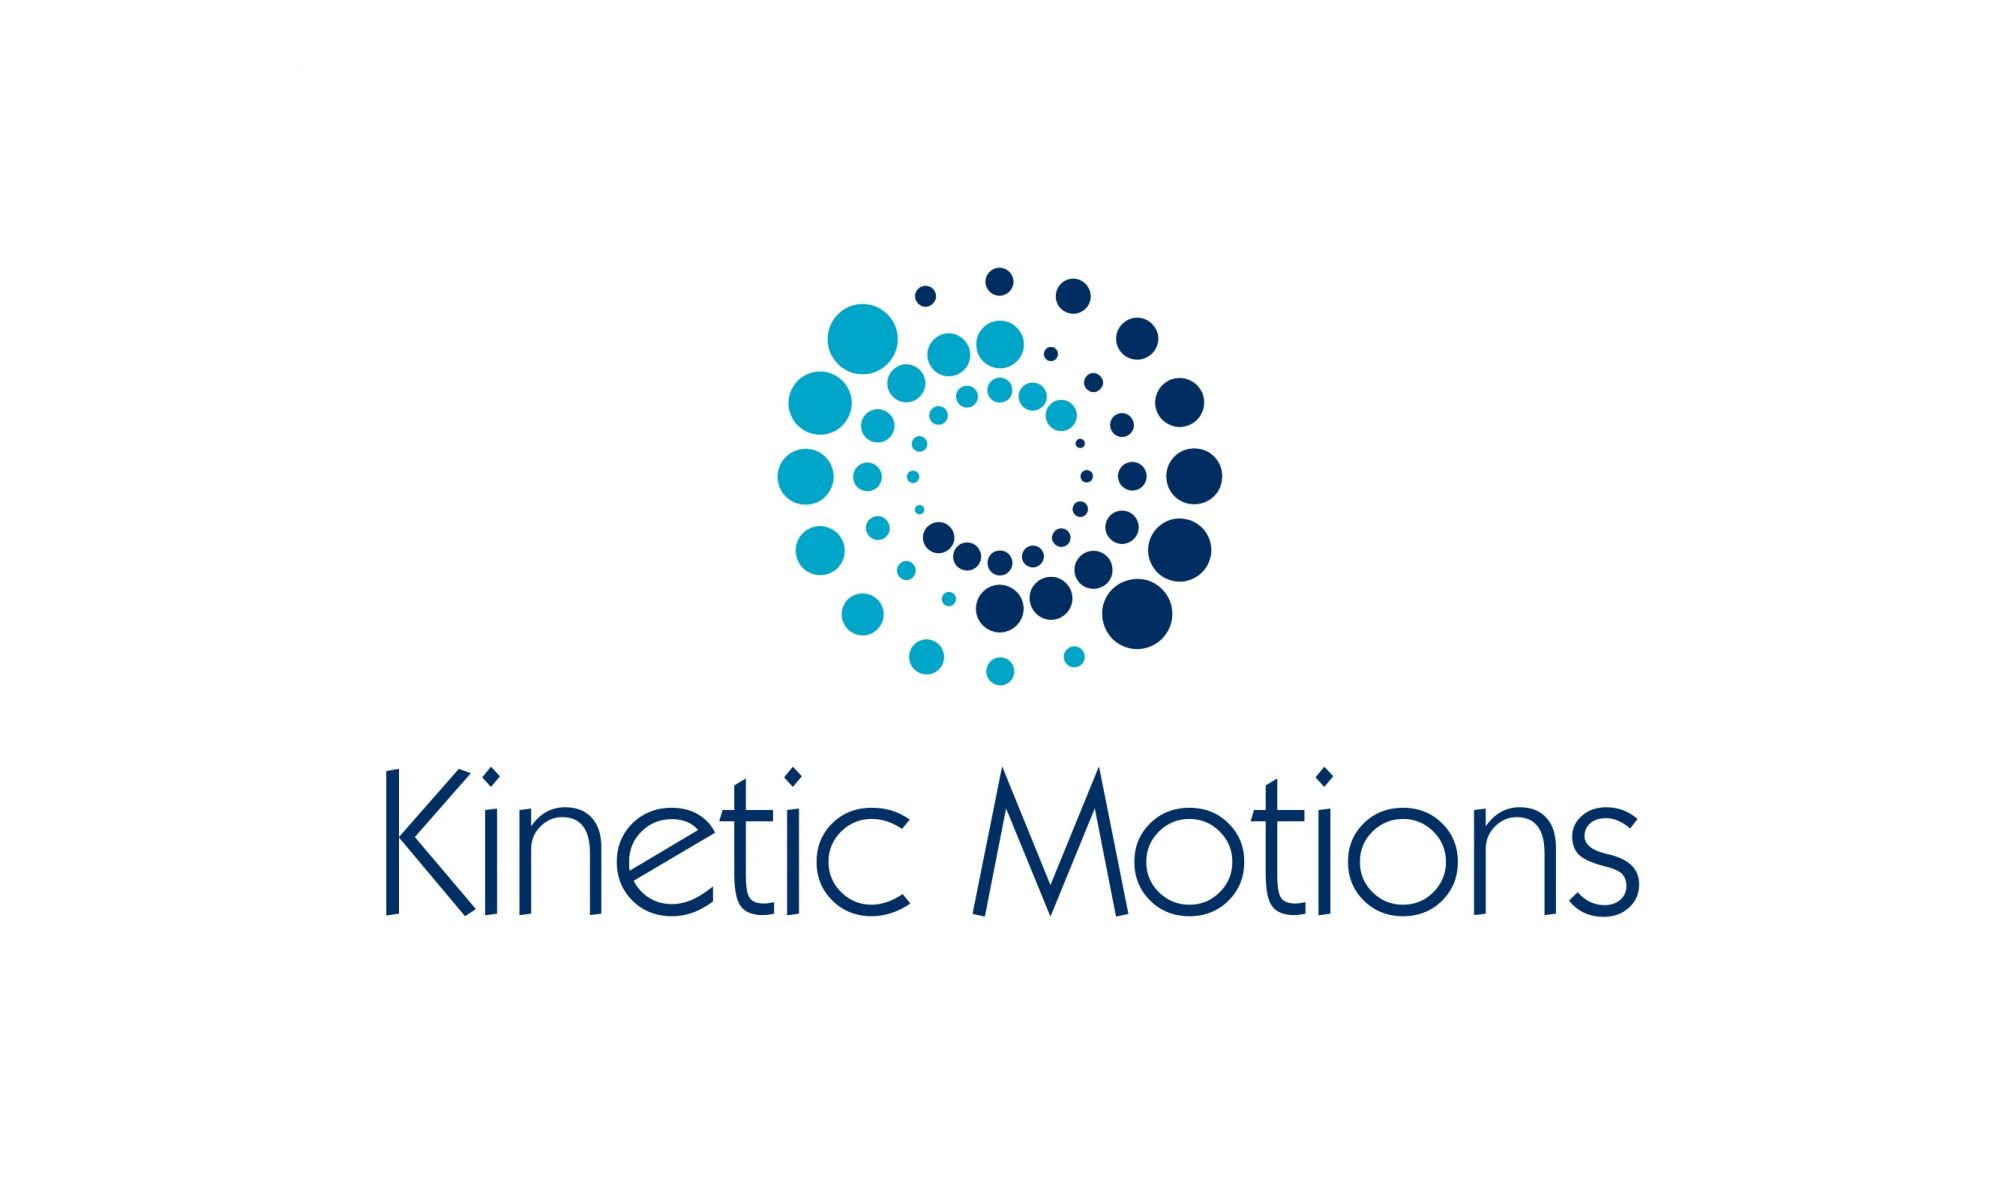 KINETIC MOTIONS